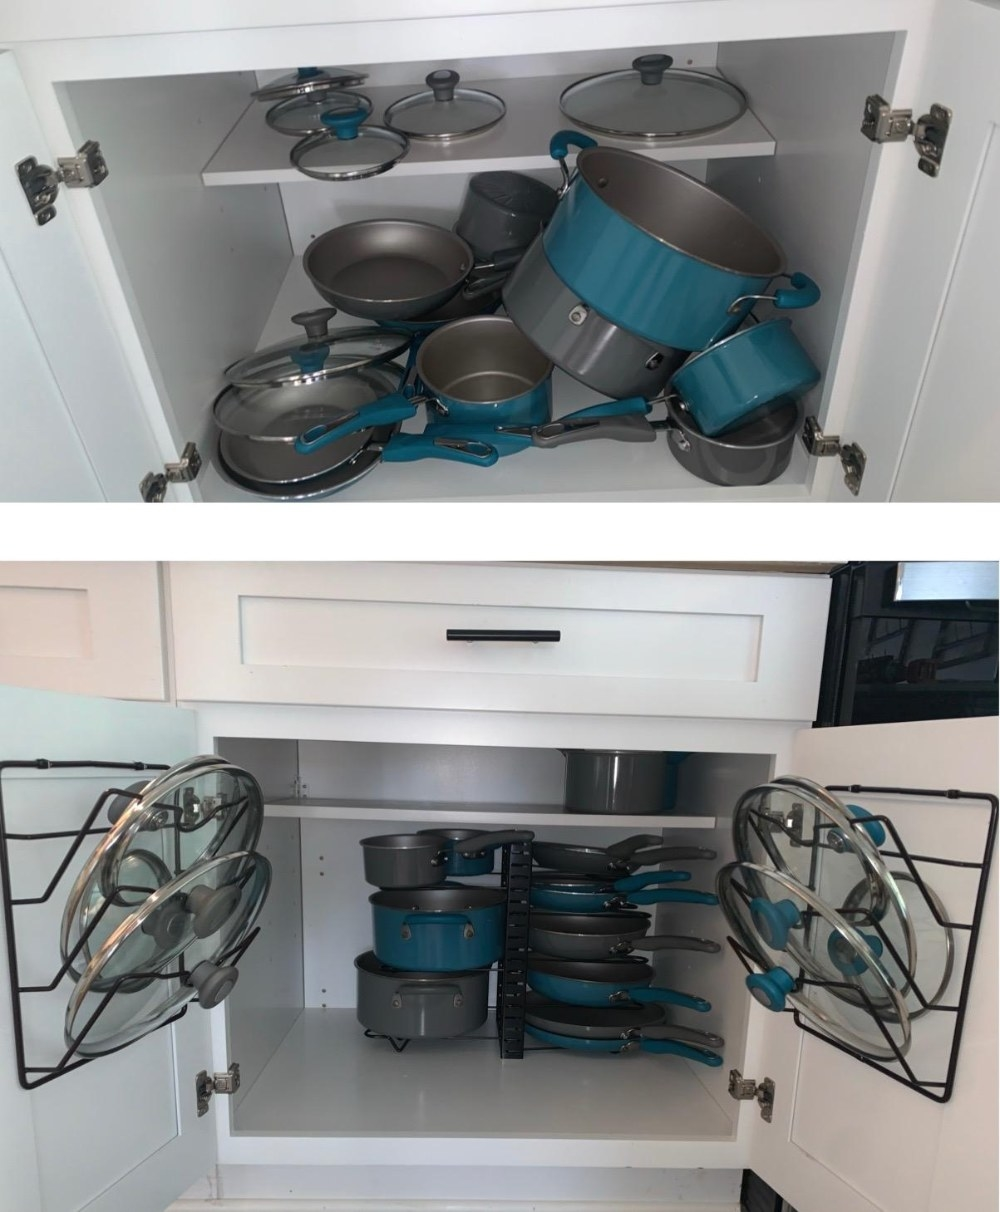 Reviewer's before-and-after photos of a disorganized cabinet with pots and lids everywhere, and an organized one with the pot lid holders mounted to the cabinet doors